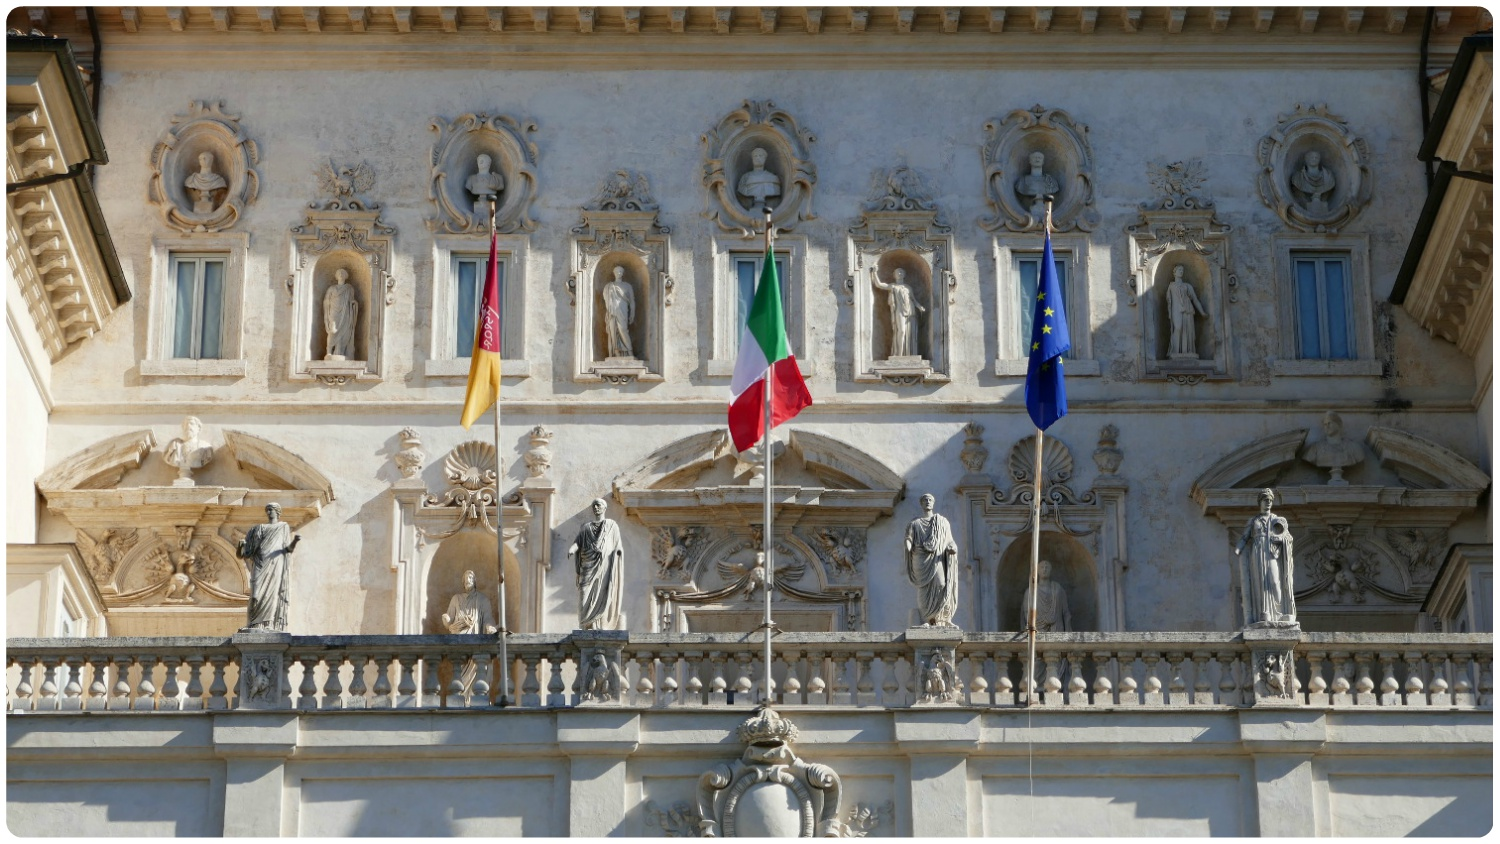 Borghese Gallery and Museum in Villa Borghese Gardens in Rome, Italy.